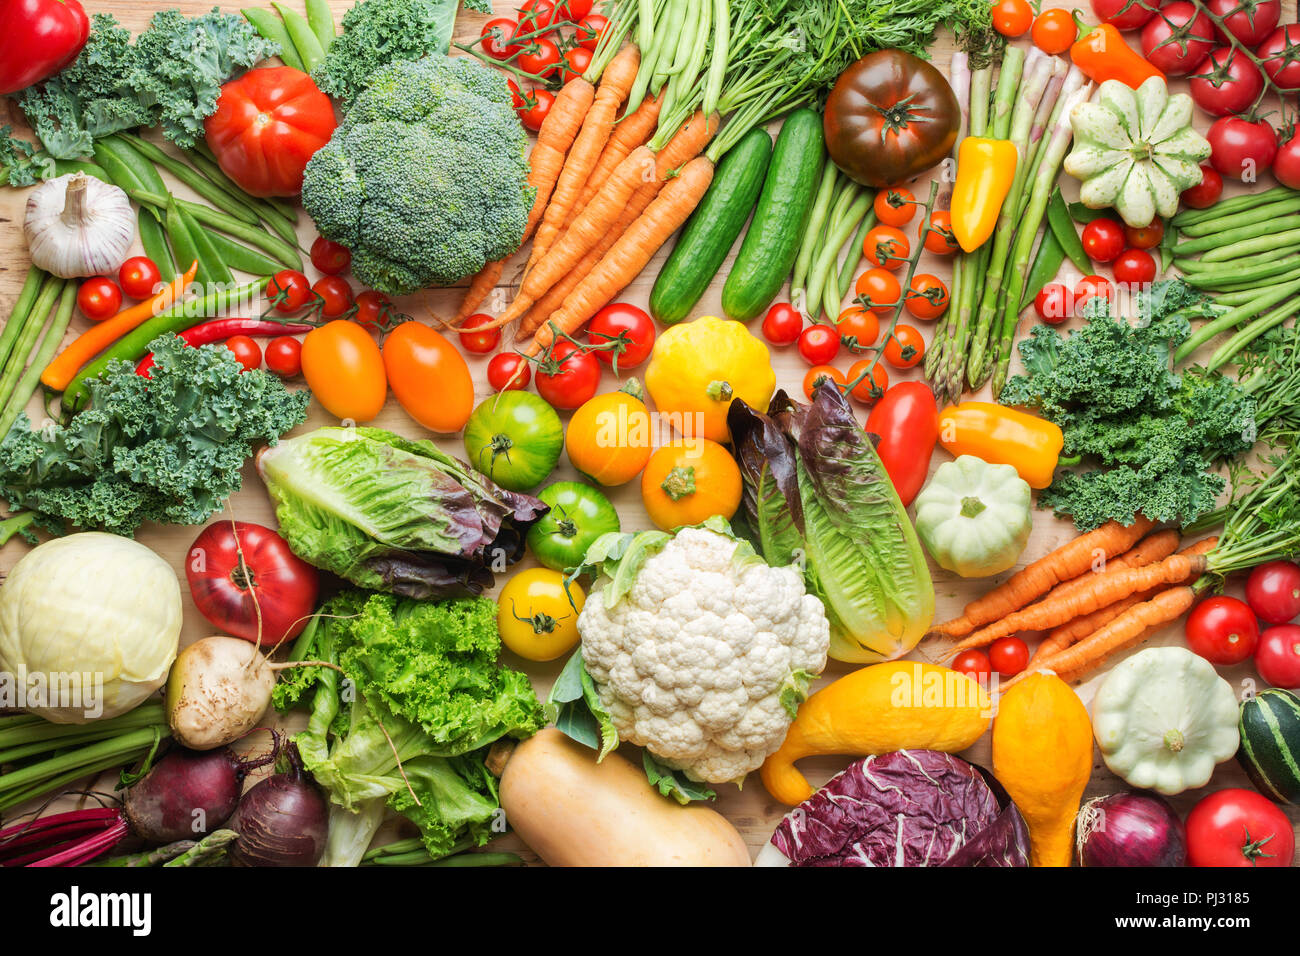 Assortment of fresh colorful organic vegetables on wooden pine table, healthy food background, top view, selective focus - Stock Image